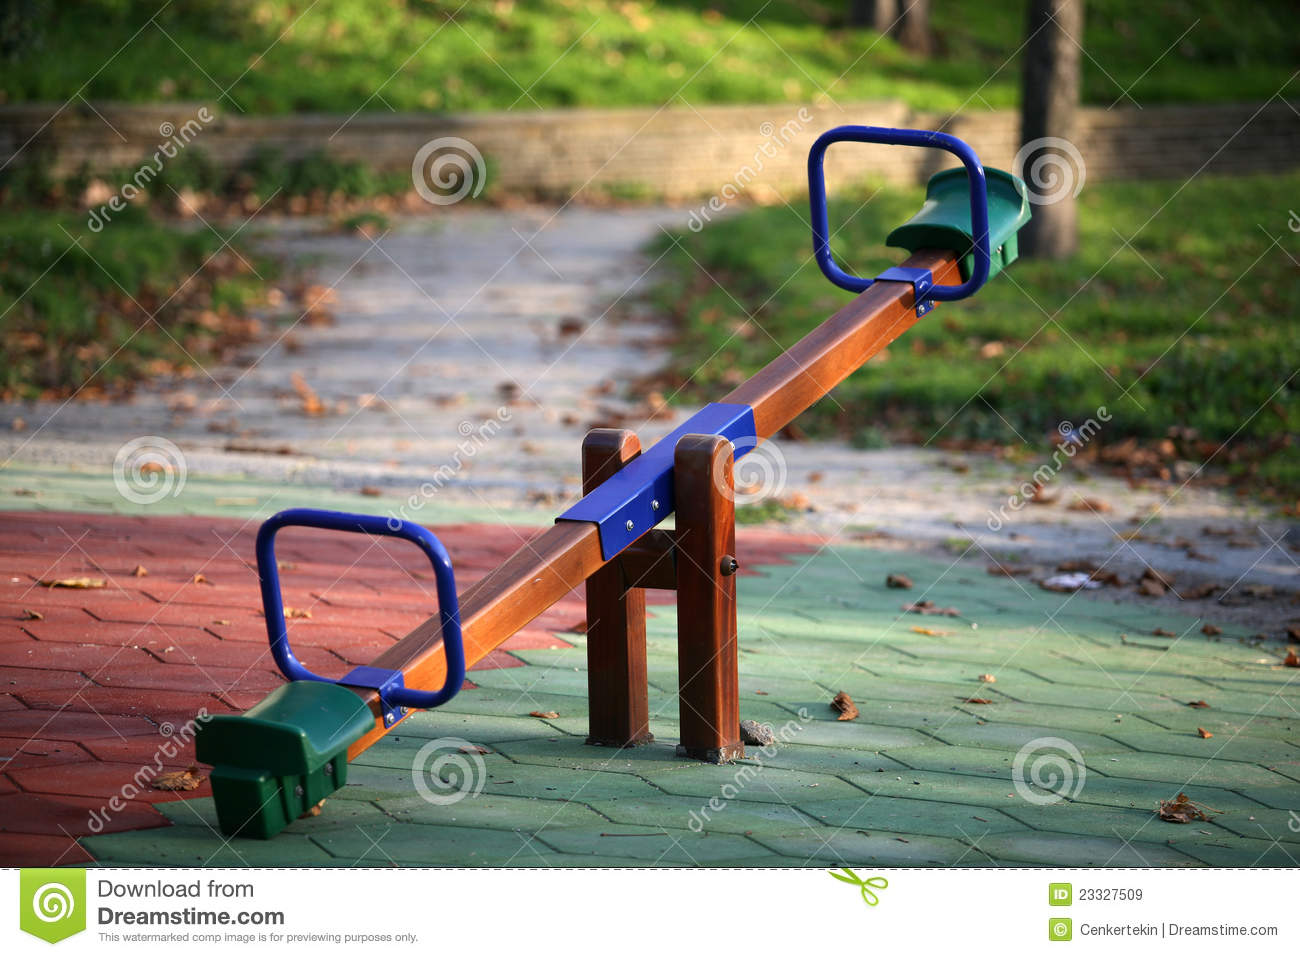 Seesaw royalty free stock images image 23327509 for Seesaw plans designs